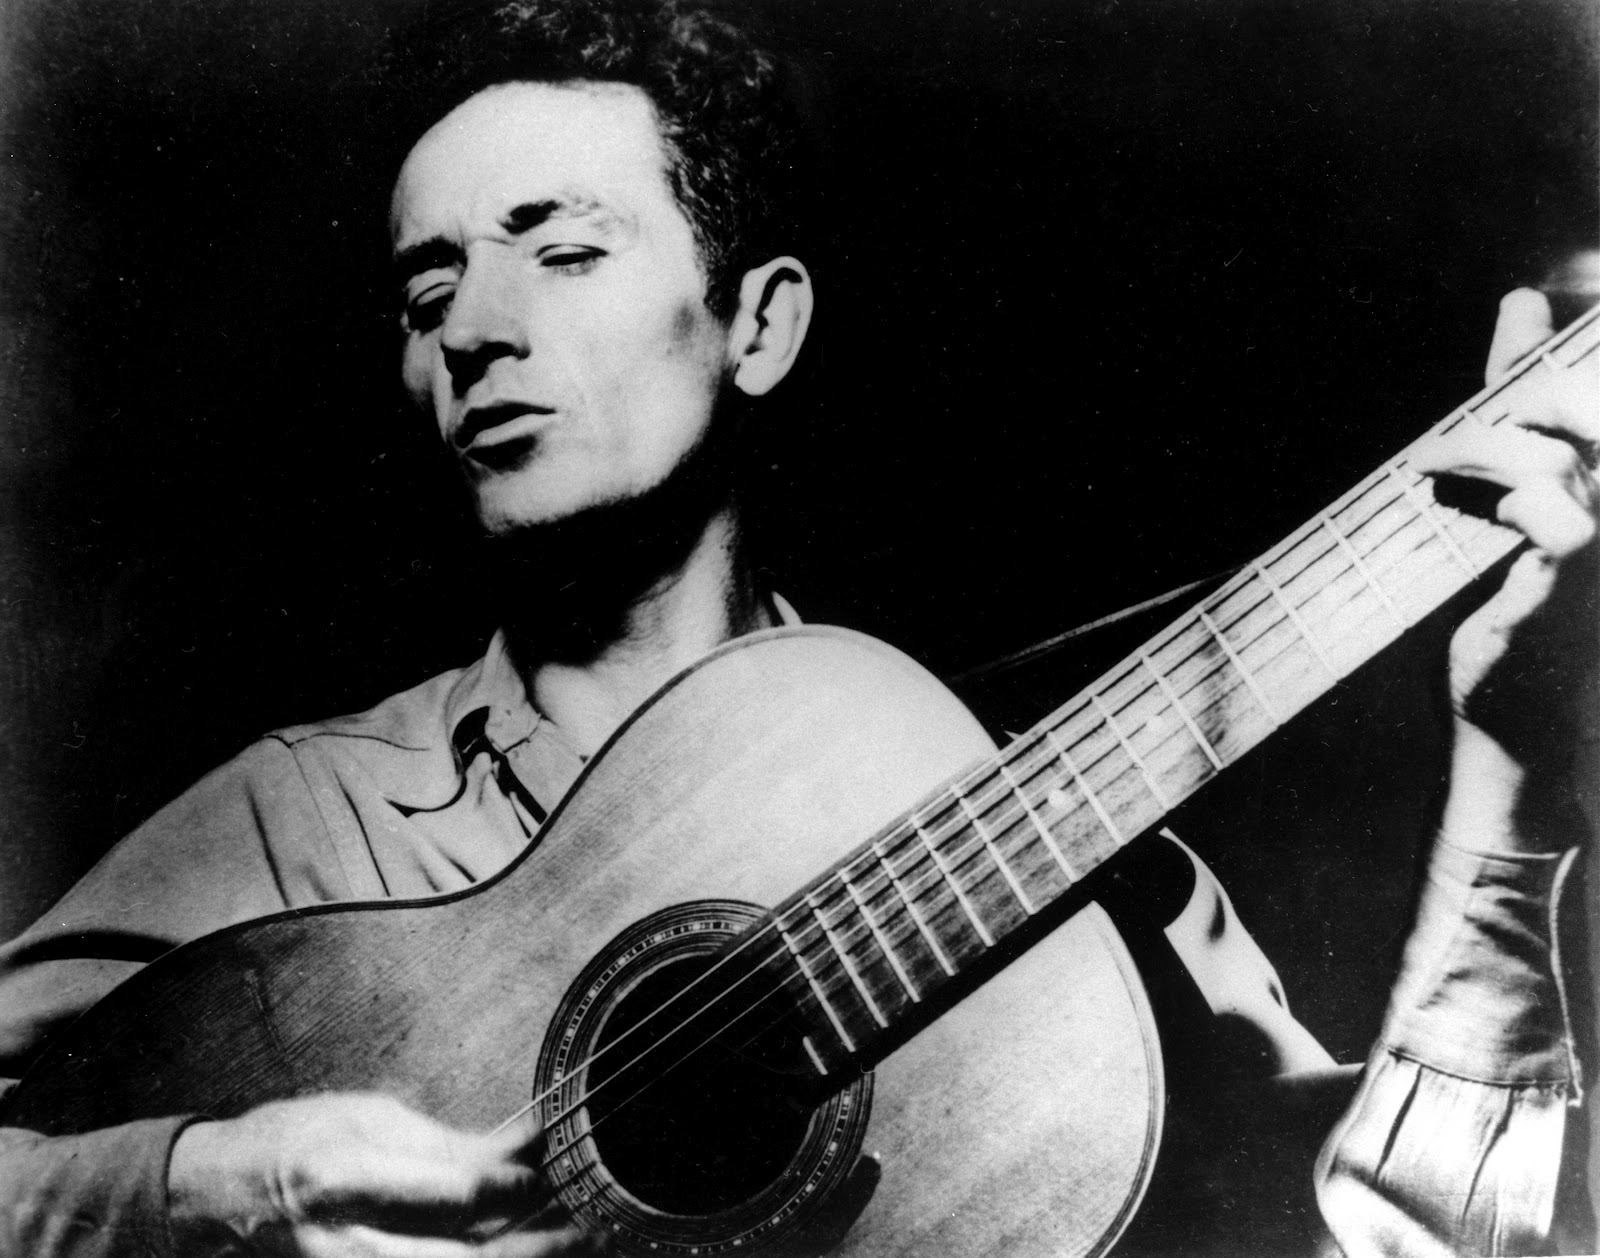 woody guthrie a great american essay Woody at 100: the woody guthrie centennial collection is a 150-page large-format book with 3 cds containing 57 tracks, including woody guthrie's most important.